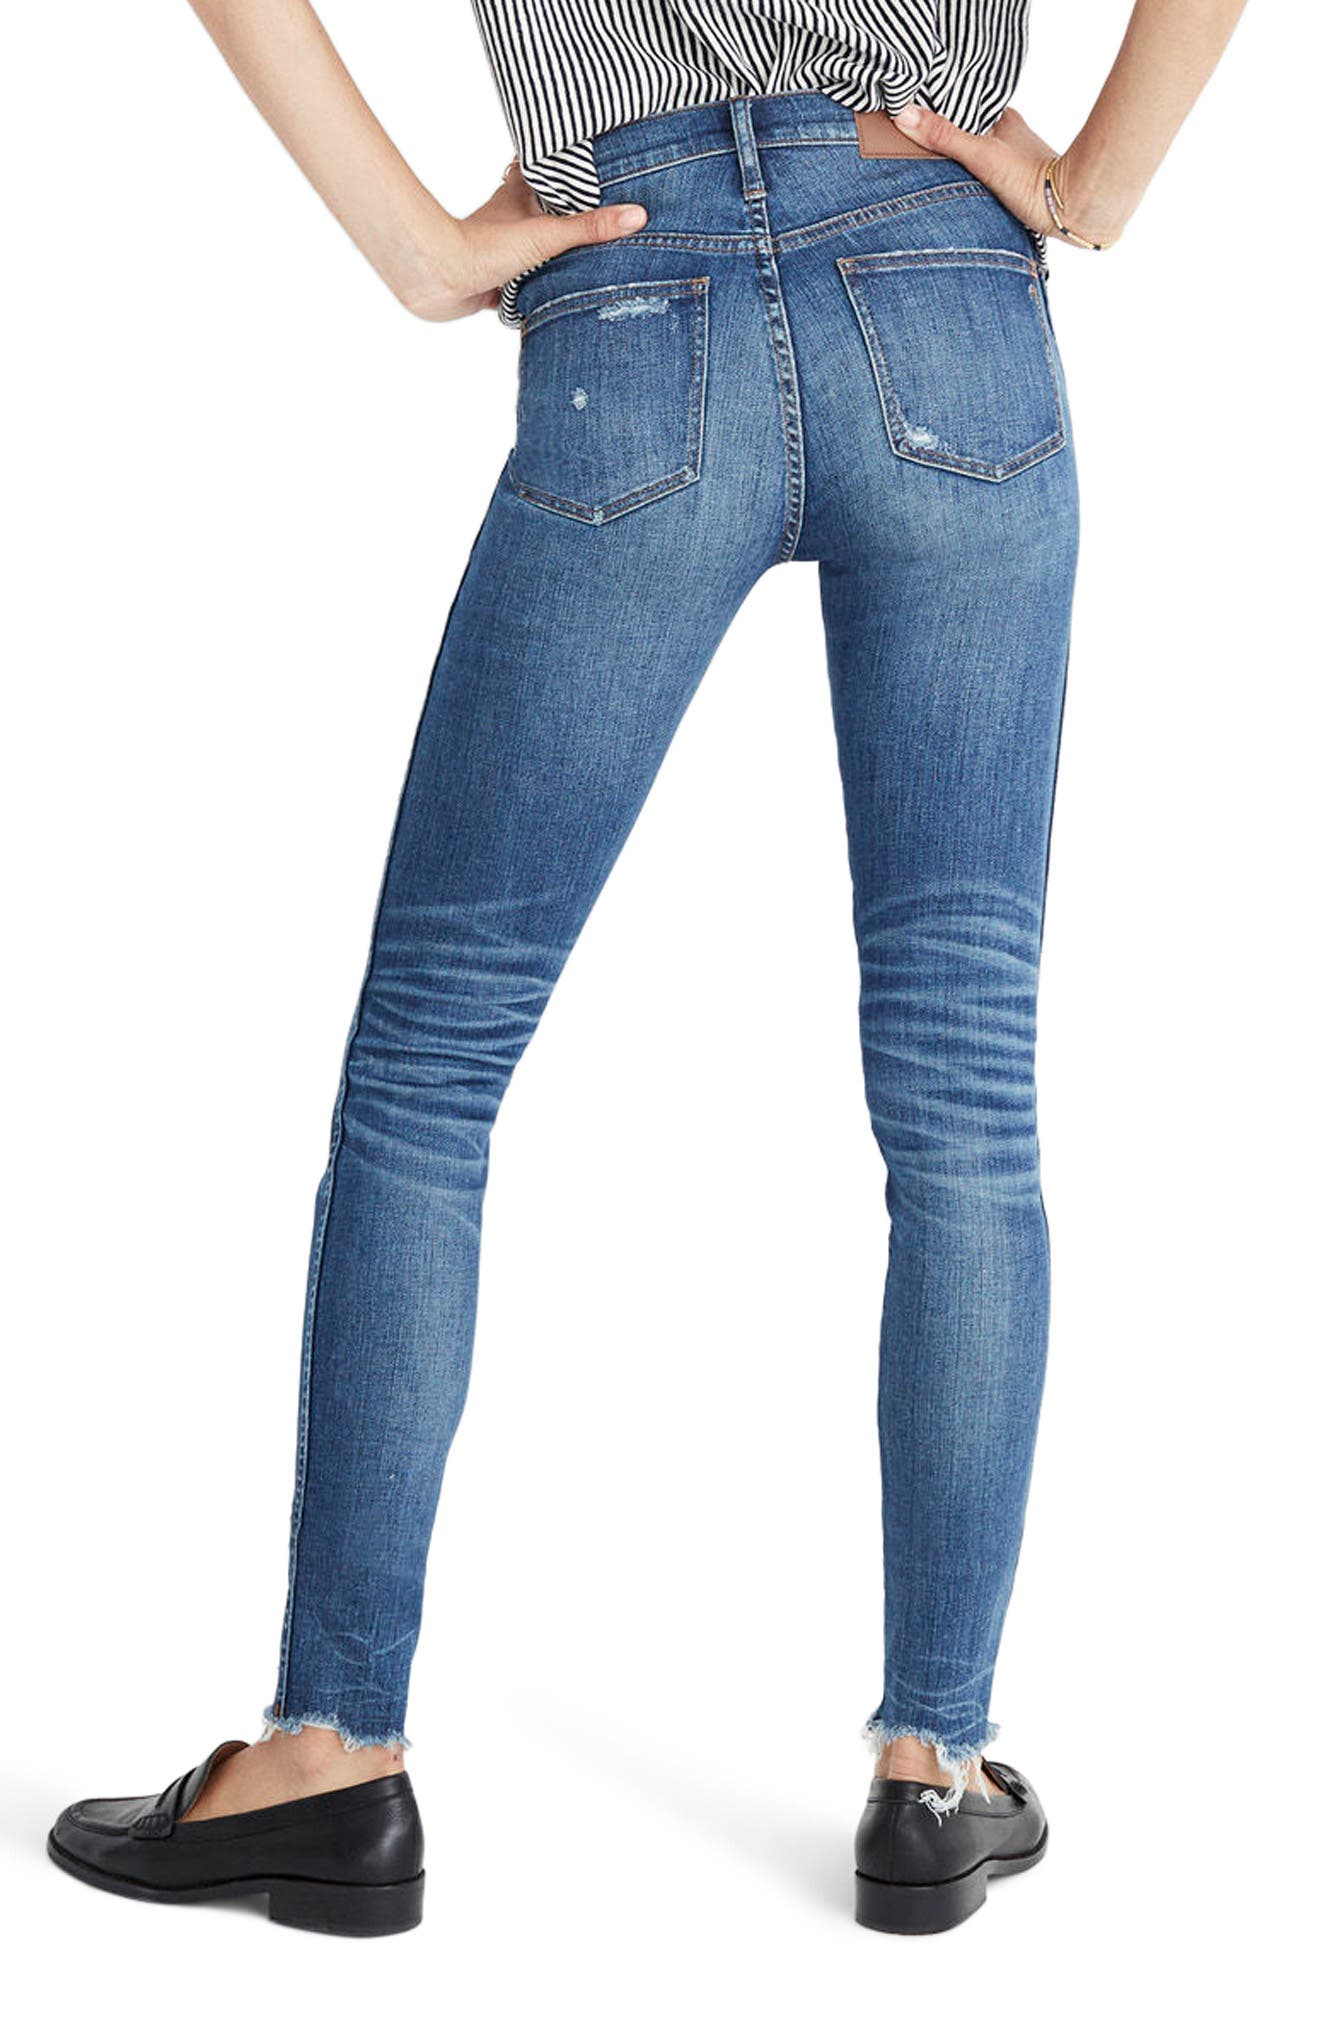 9-Inch High Waist Ankle Skinny Jeans,                             Alternate thumbnail 2, color,                             490